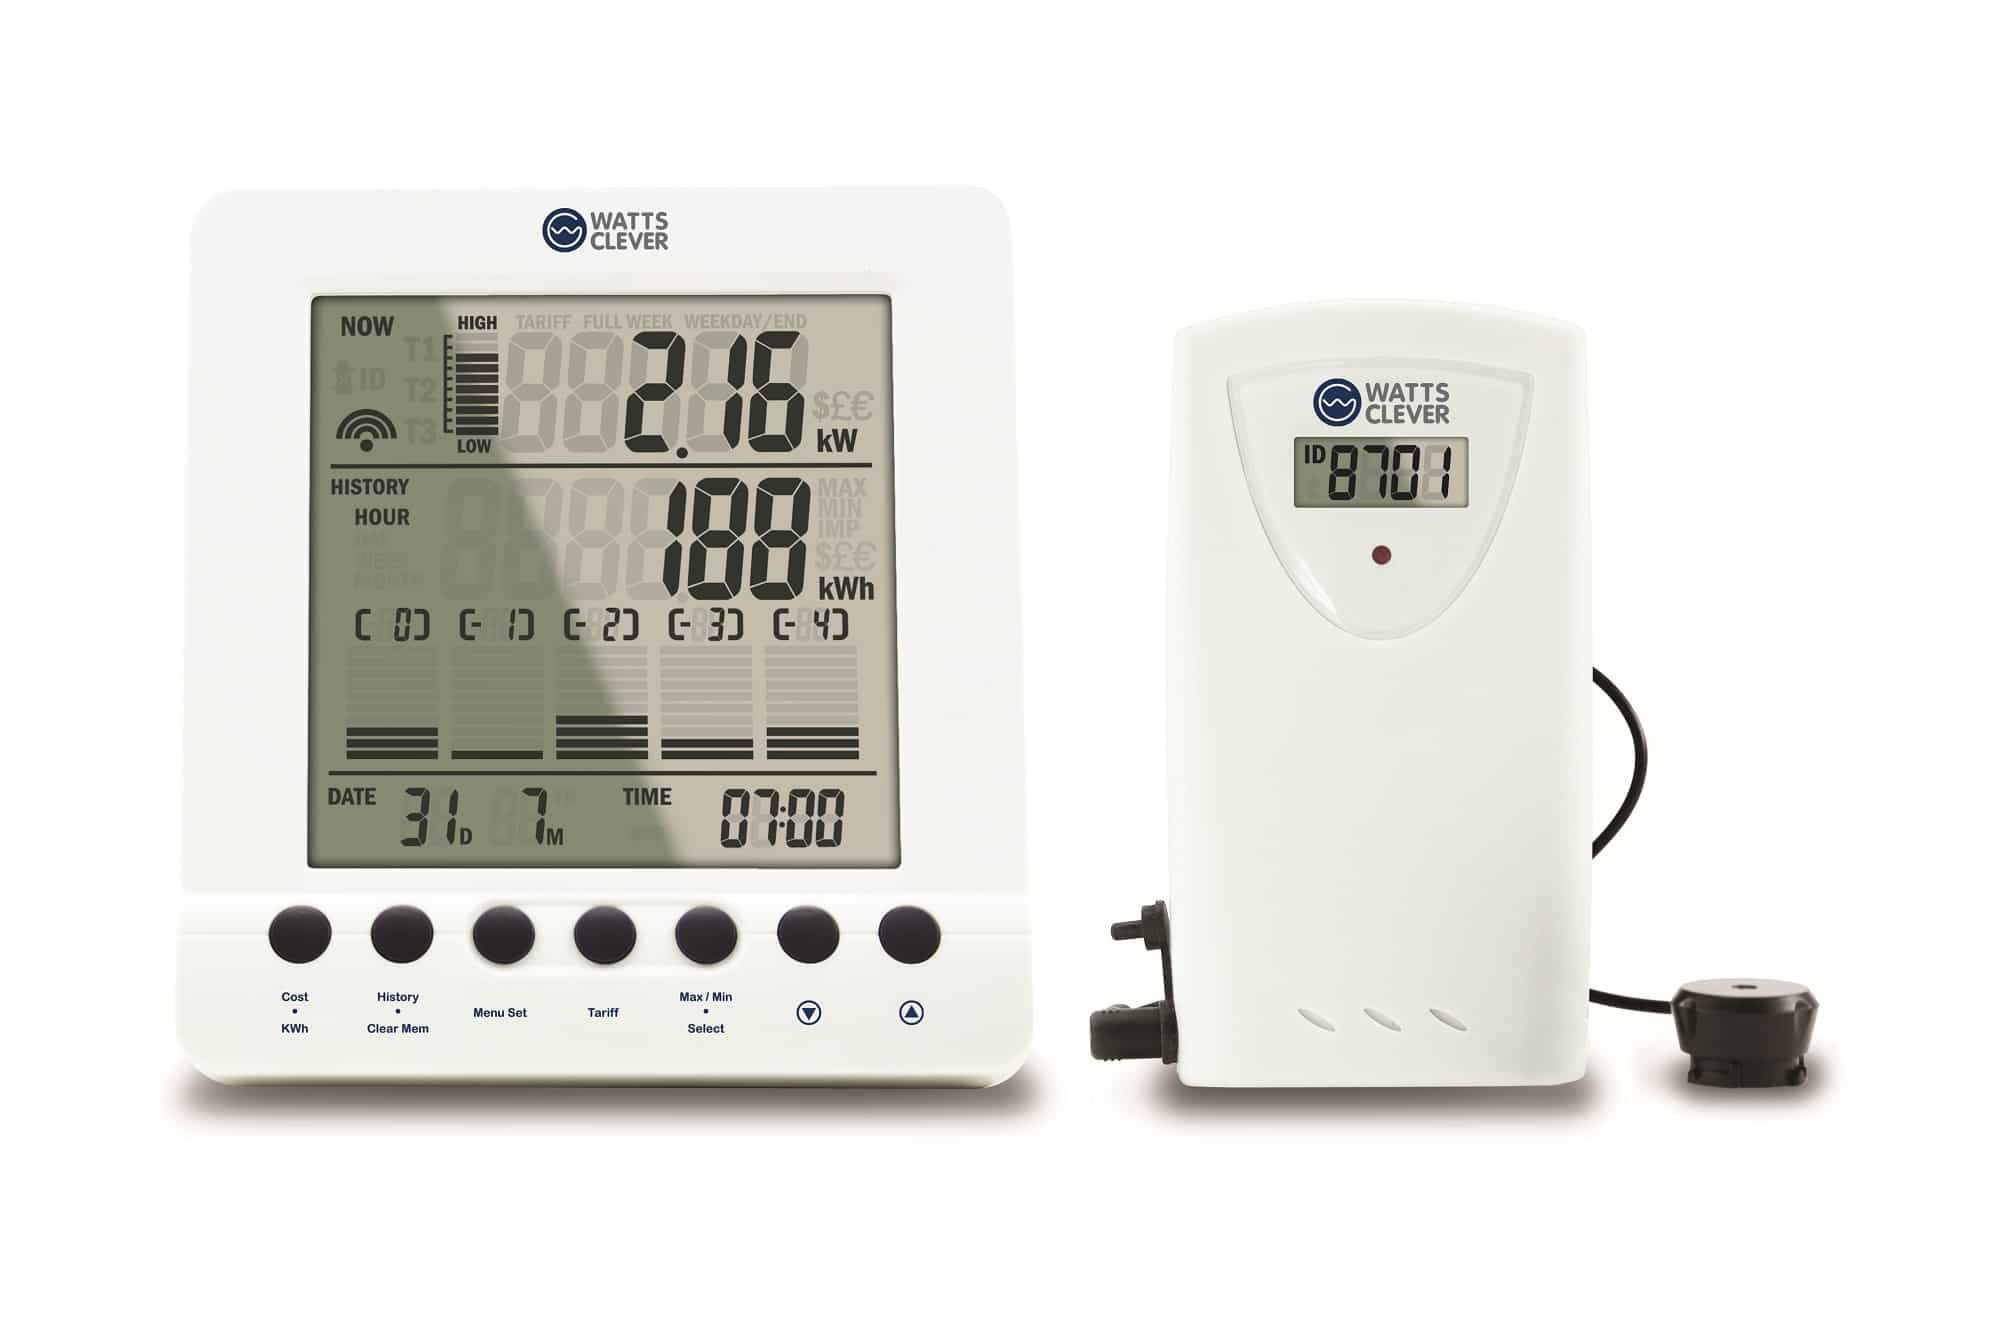 Watts Cleaver Energy monitoring meter